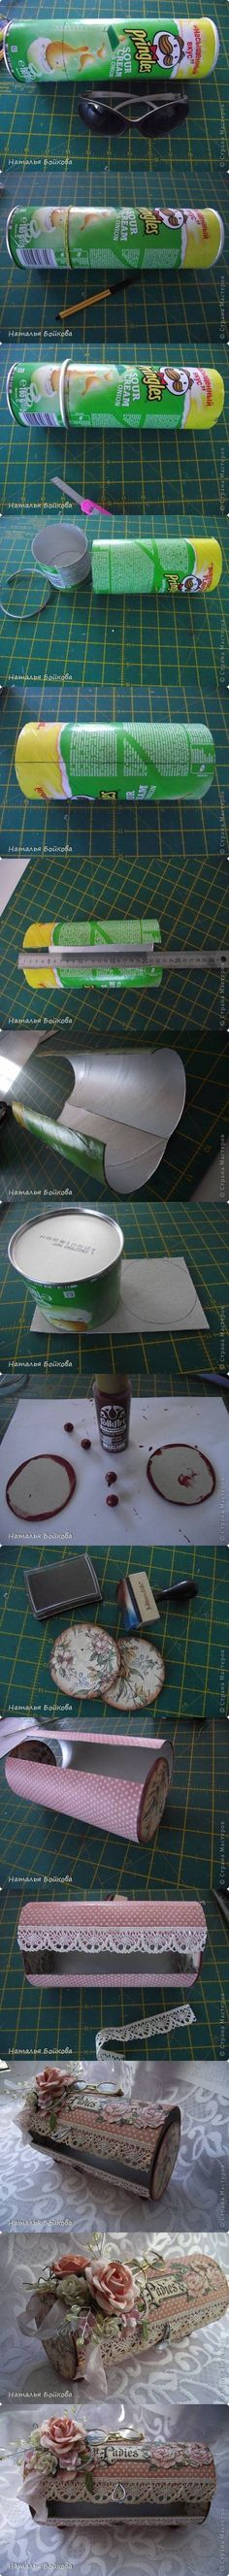 DIY Pretty Vintage Box from Pringles Can #craft #recycle